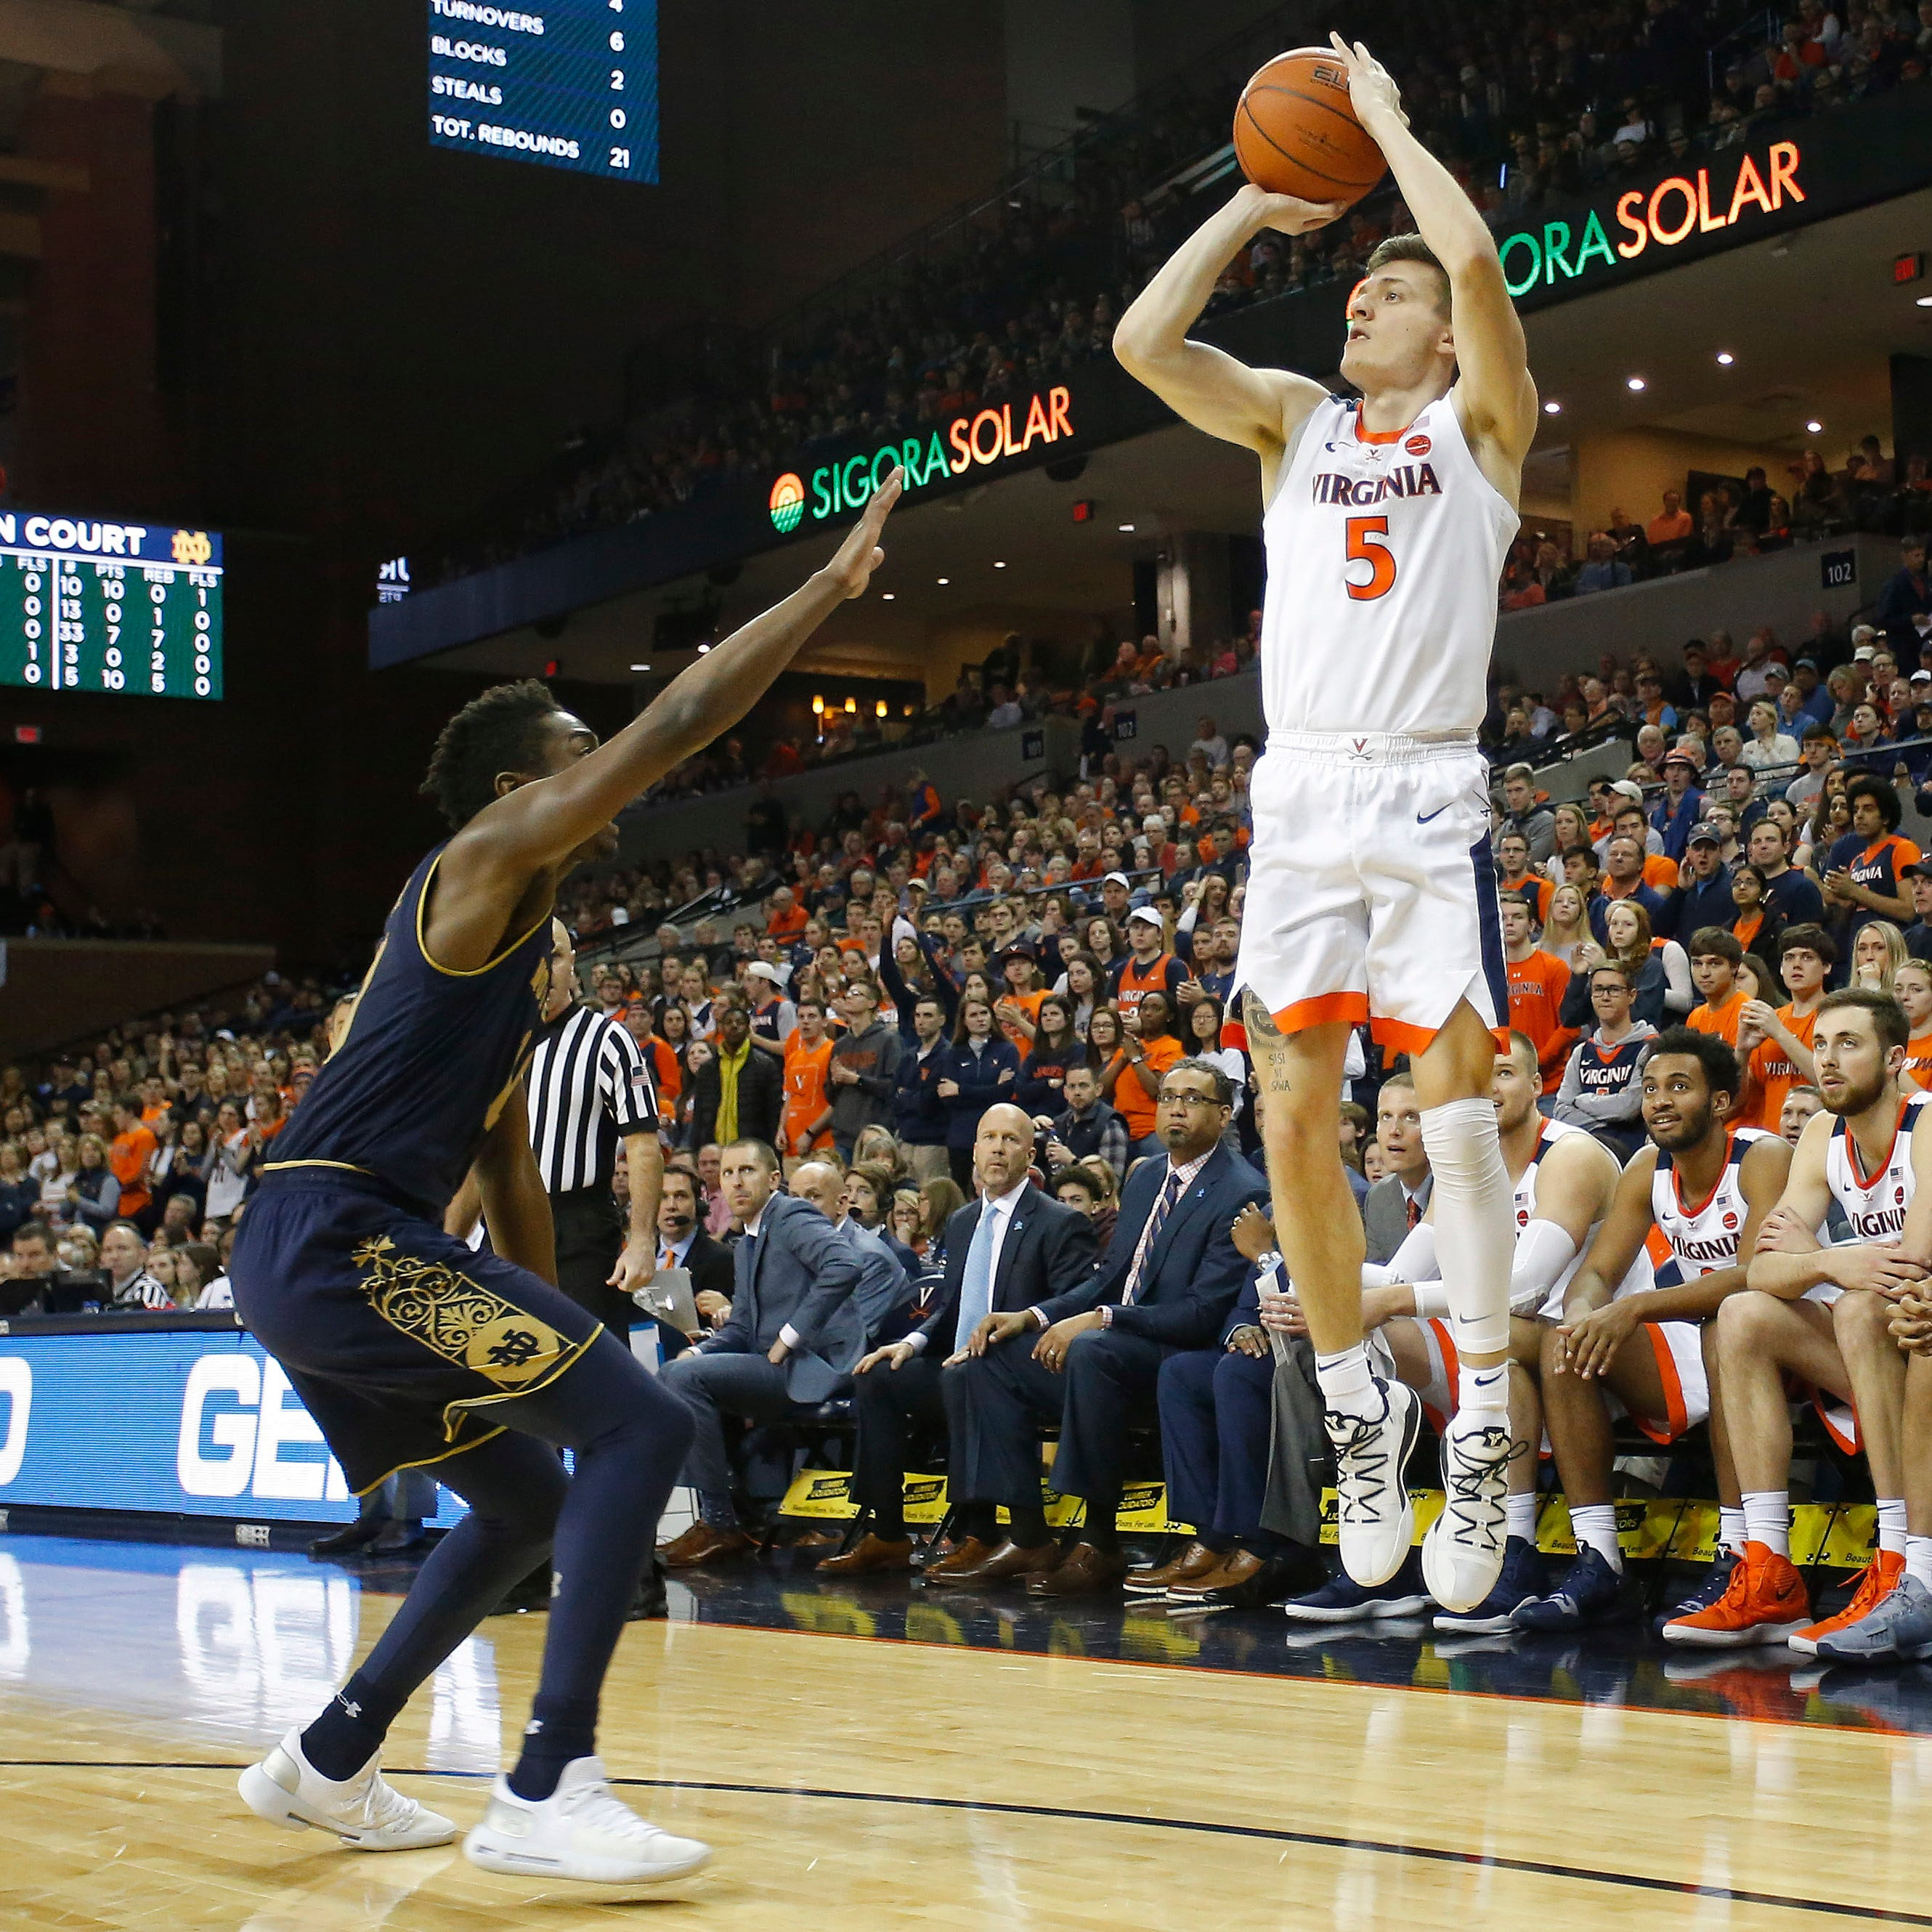 Virginia Cavaliers guard Kyle Guy (5) shoots the ball over Notre Dame Fighting Irish guard TJ Gibbs (10) in the second half at John Paul Jones Arena. The Cavaliers won 60-54.